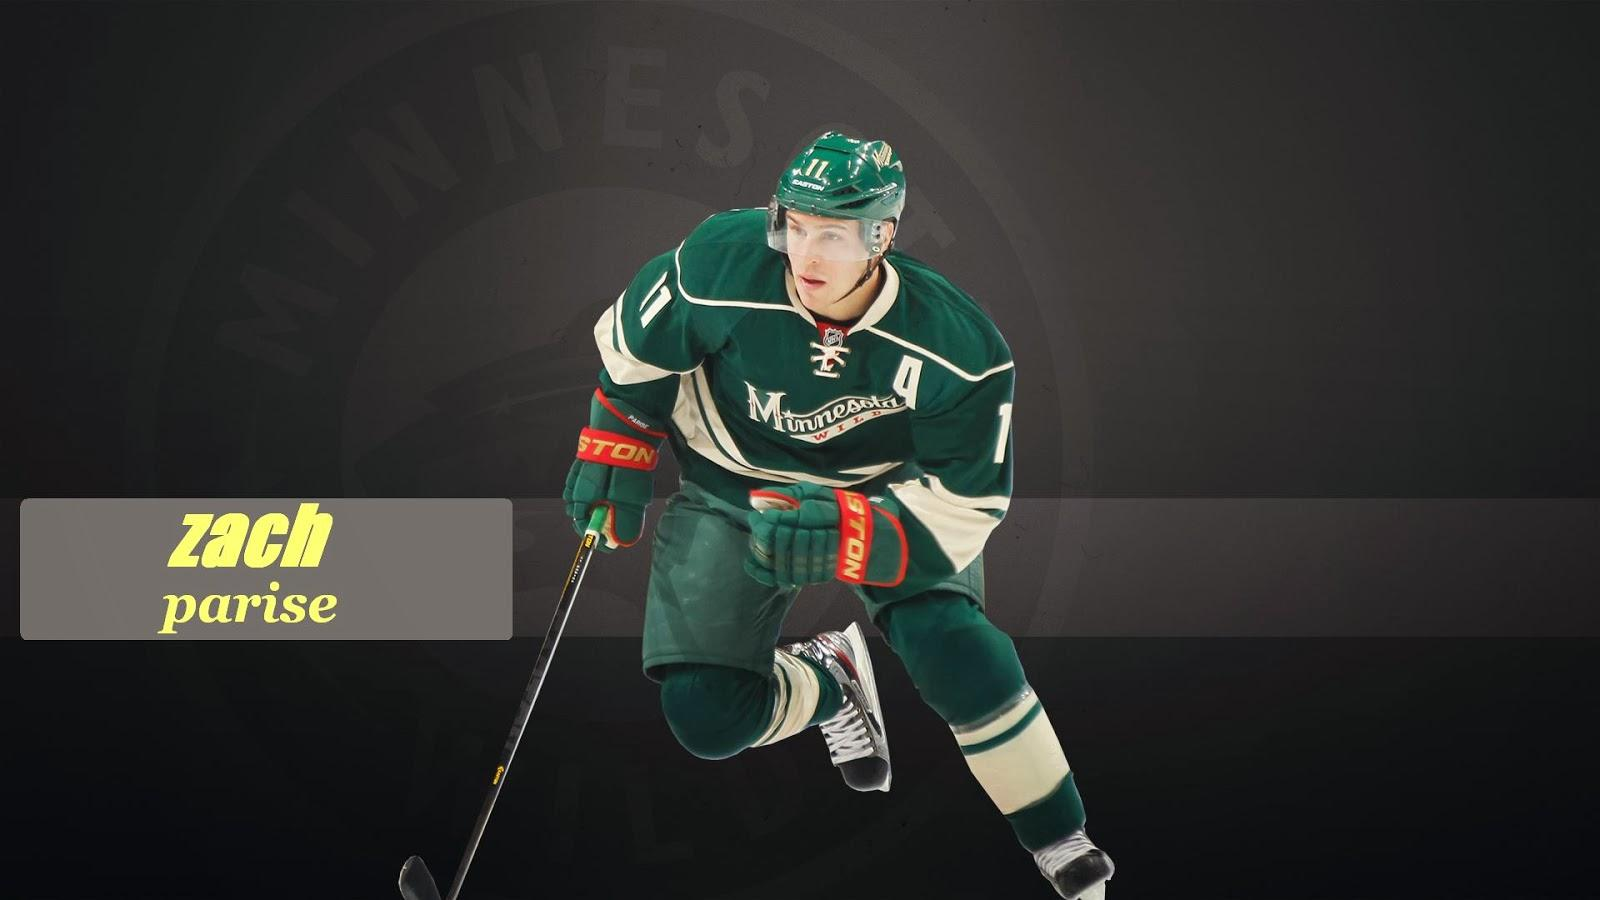 All Blu-Ray Wallpapers: Zach Parise Latest HD Wallpapers 2014